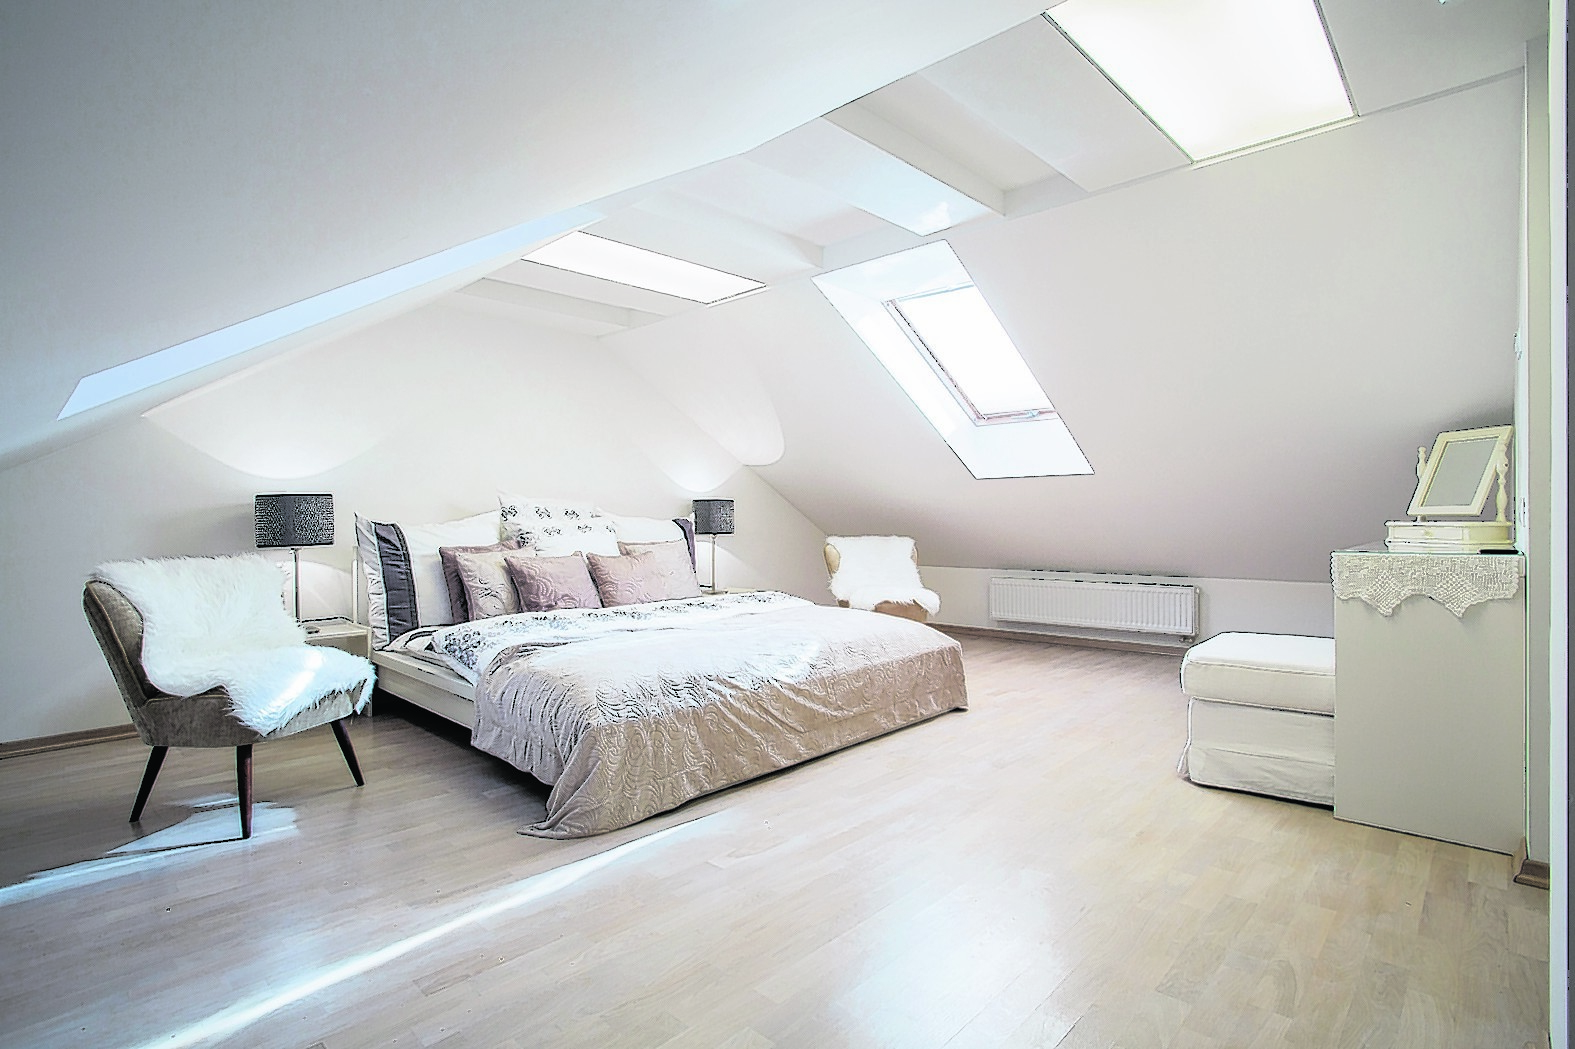 You can add value to your home with a well done loft conversion